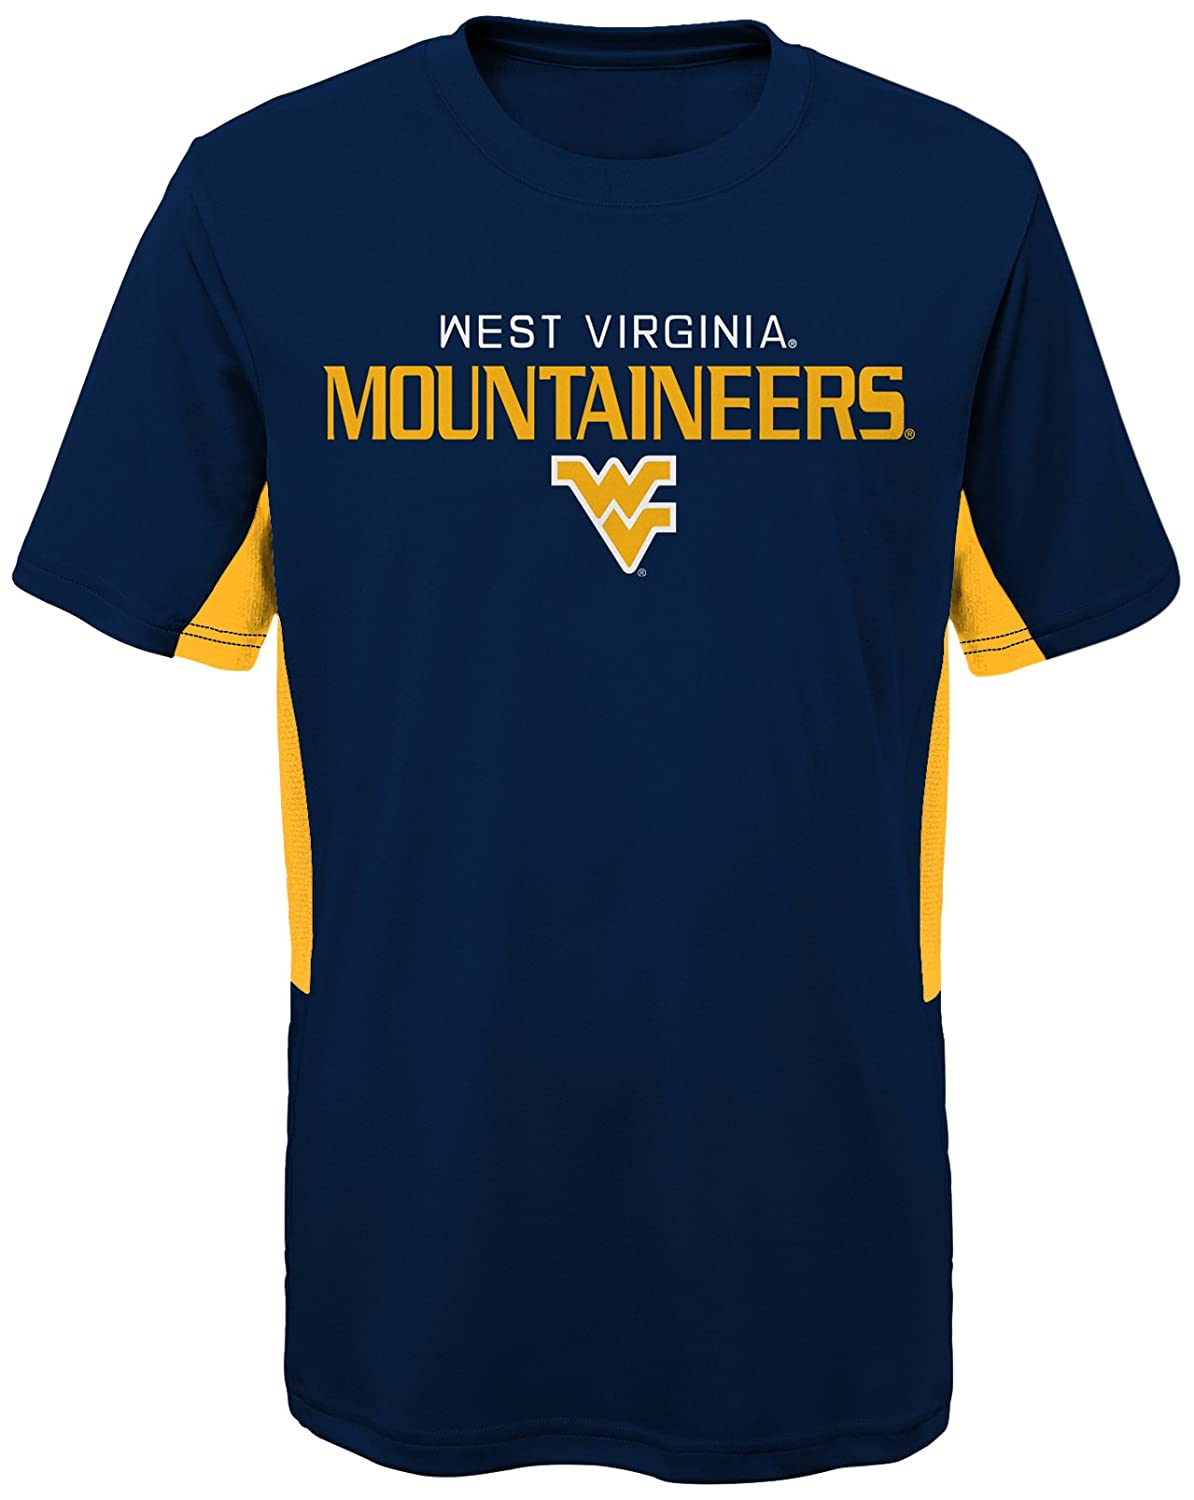 NCAA by Outerstuff NCAA West Virginia Mountaineers Youth Boys Mainframe: Short Sleeve Performance Top Youth Small Dark Navy 8